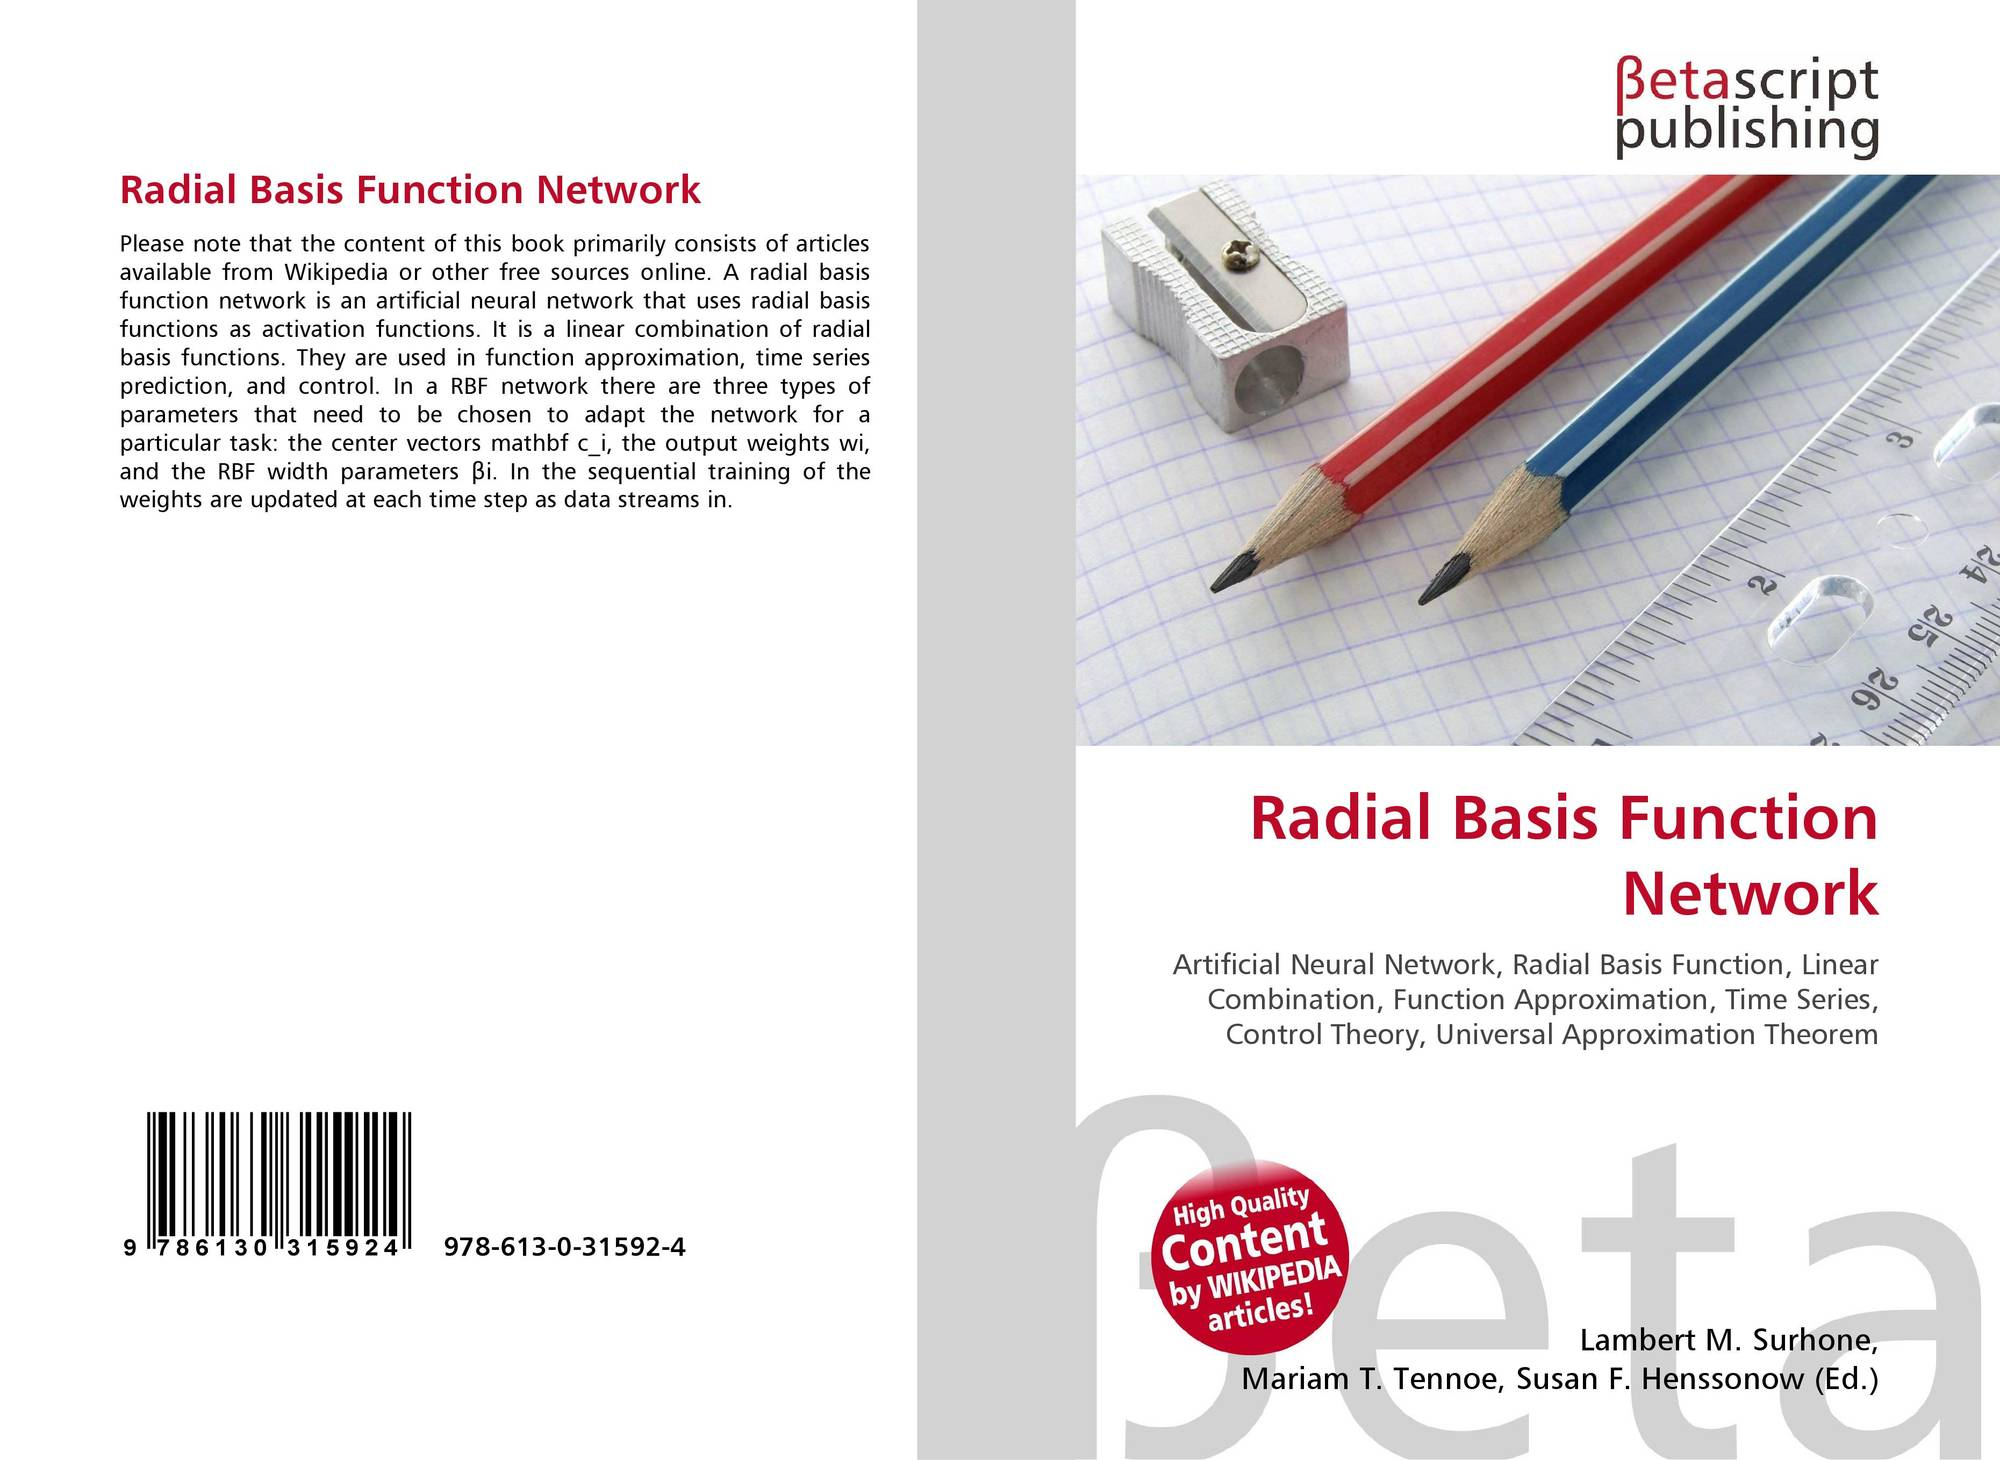 radial basis function dissertation A radial basis function (rbf) is a term that describes any real valued function whose output depends exclusively on the distance of its input from some origin.